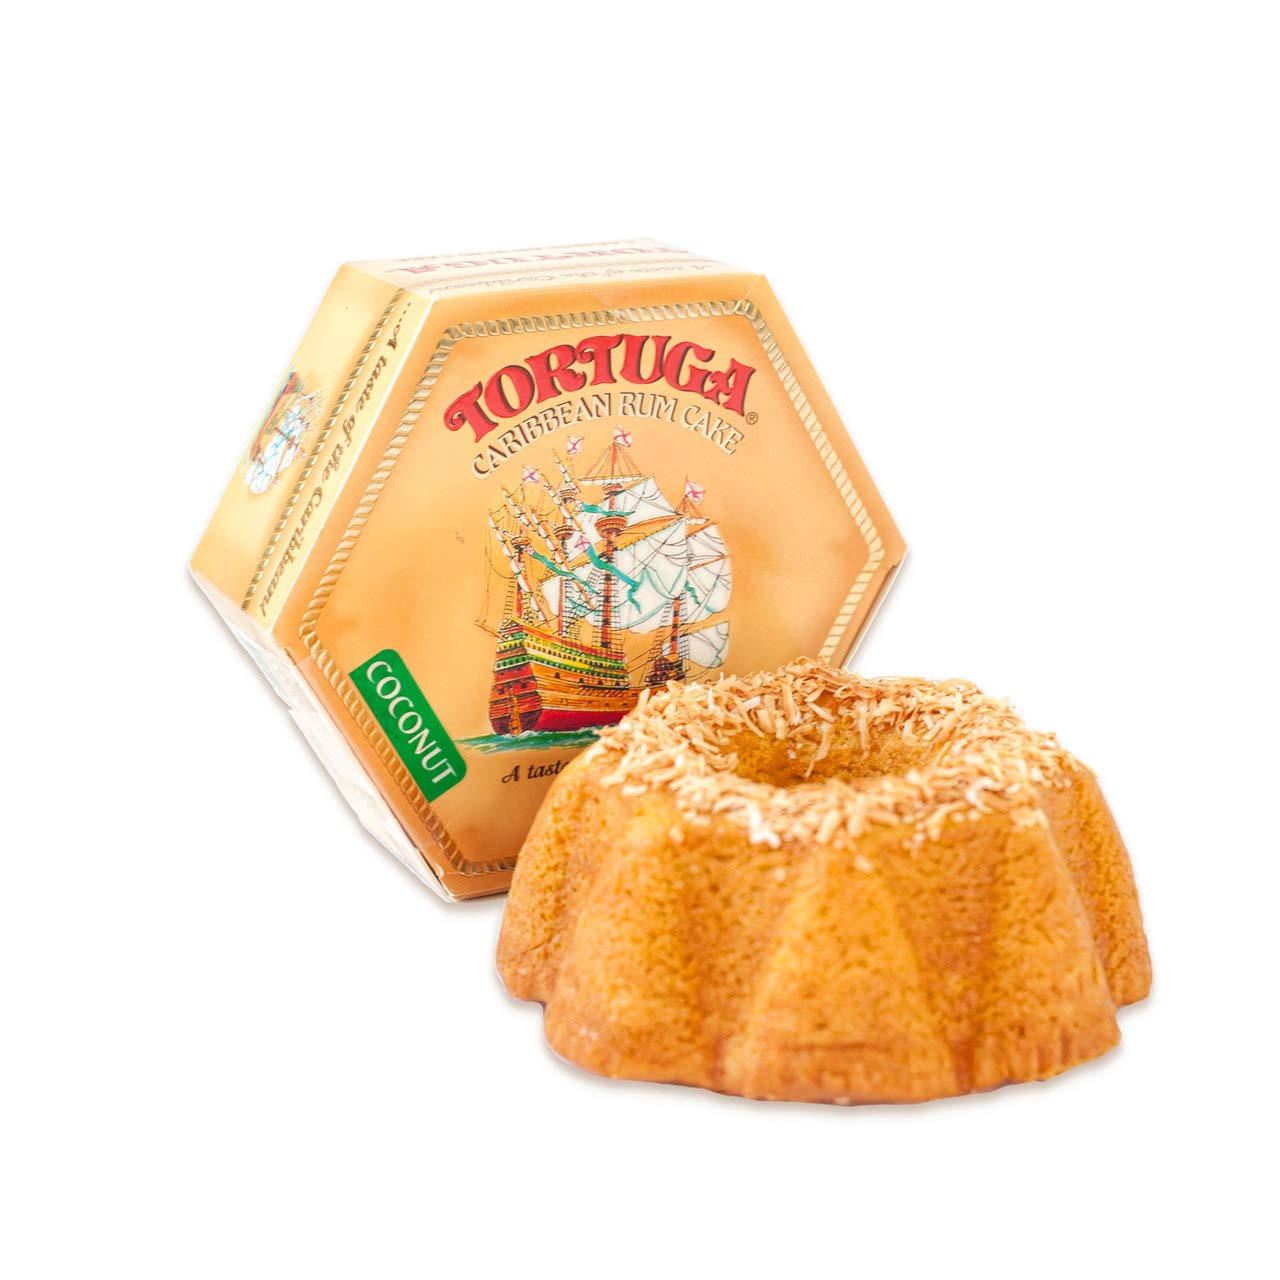 TORTUGA Caribbean Coconut Rum Cake - 32 oz Rum Cake - The Perfect Premium Gourmet Gift for Gift Baskets, Parties, Holidays, and Birthdays by TORTUGA